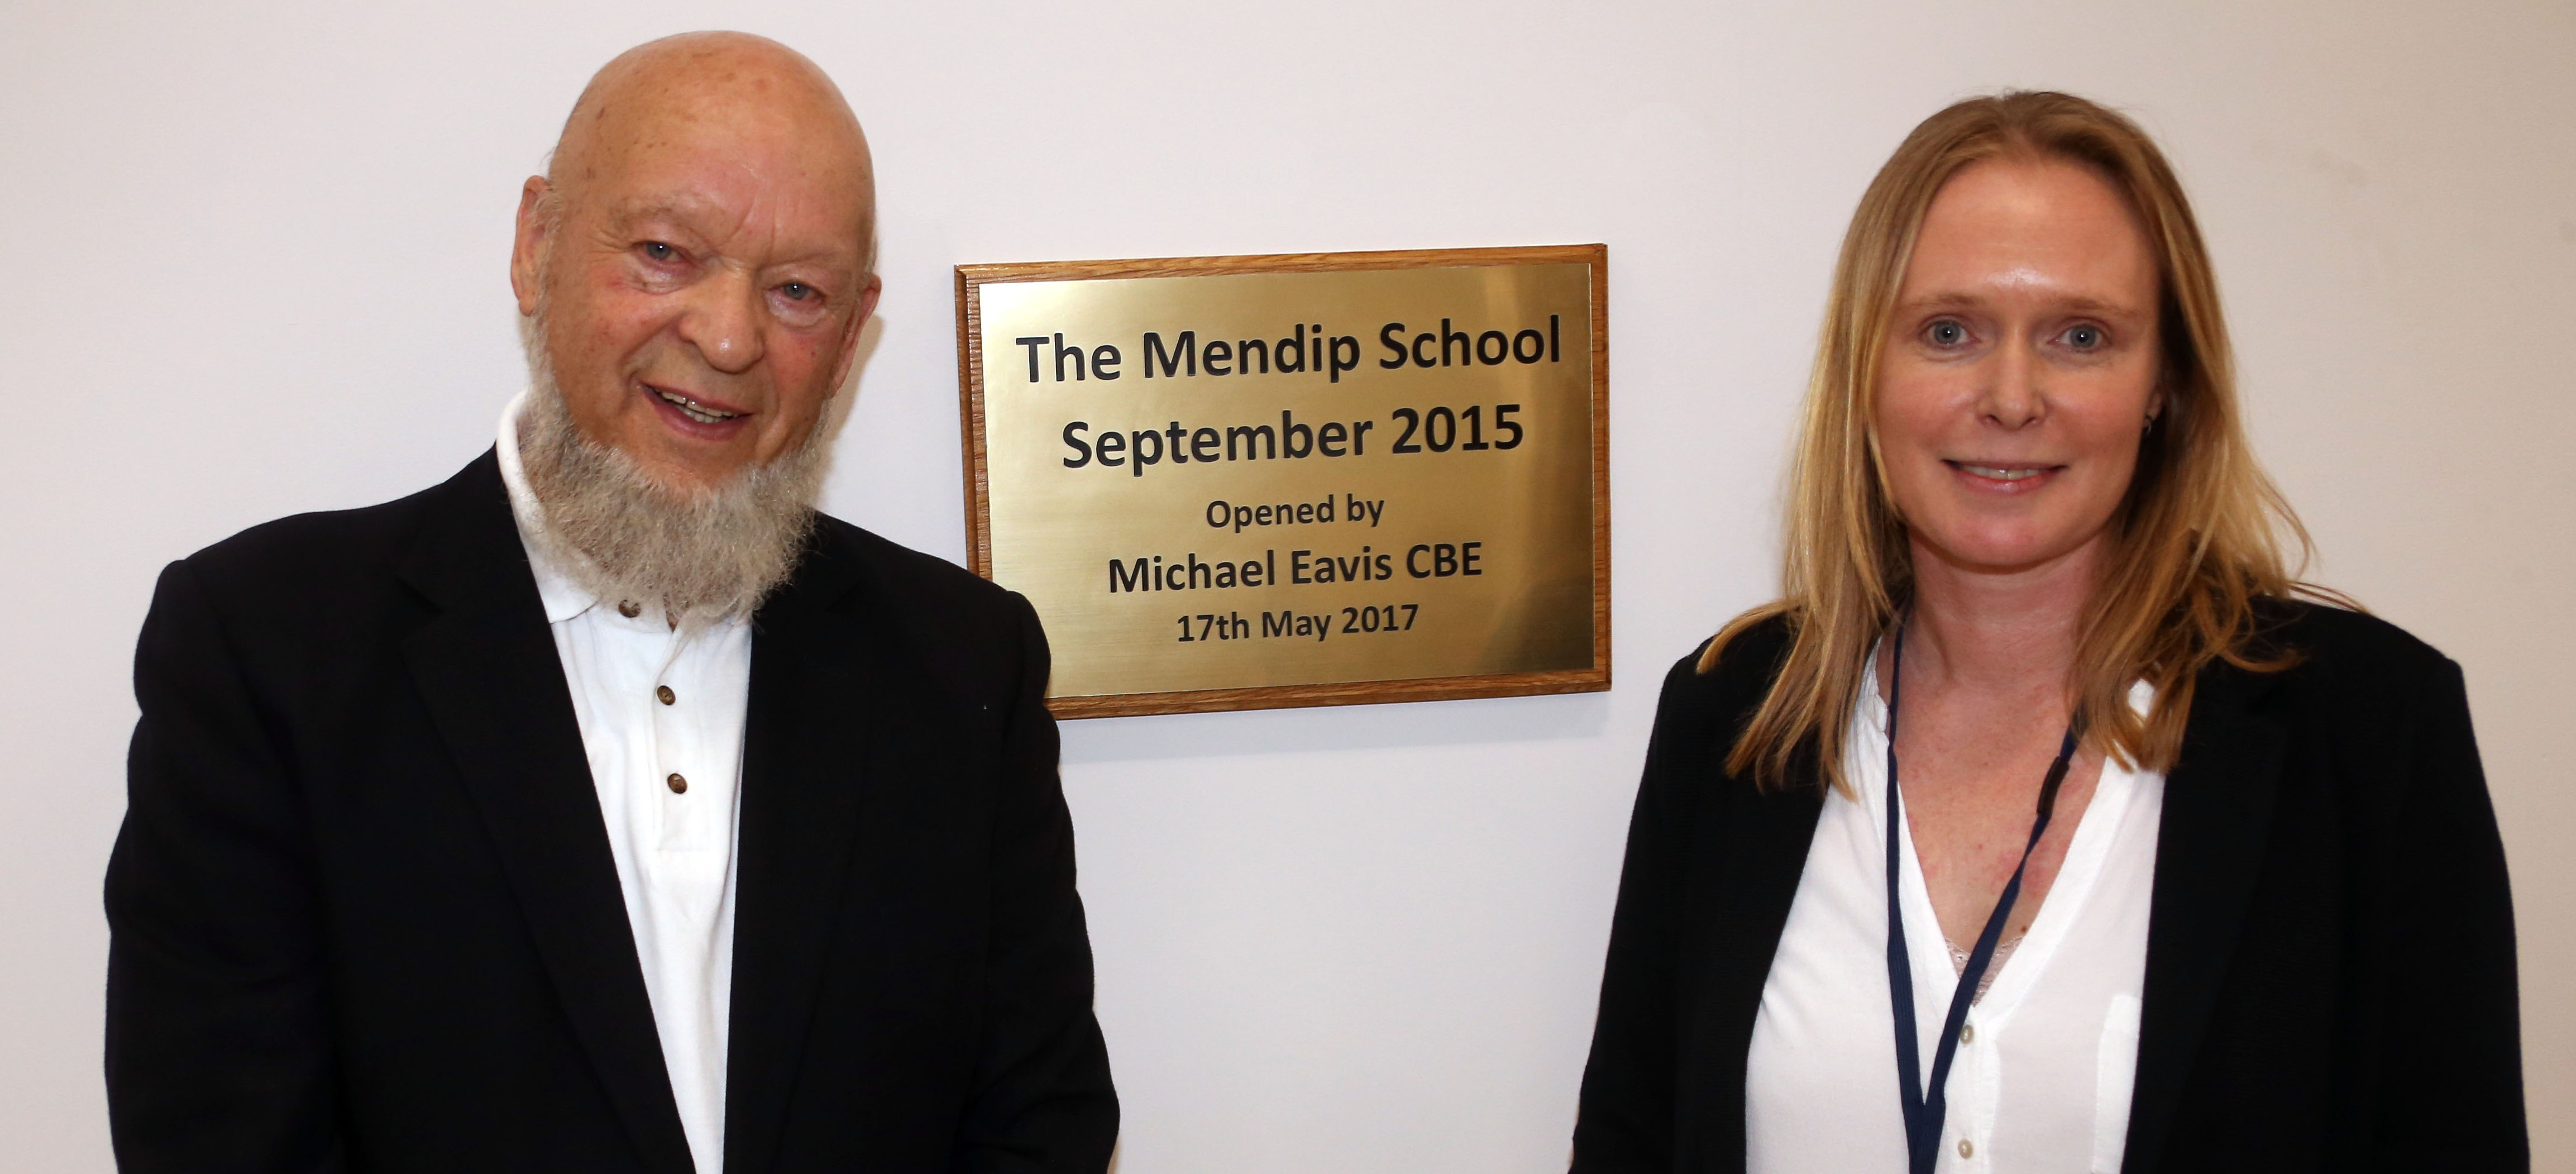 The Mendip School is Officailly Open!